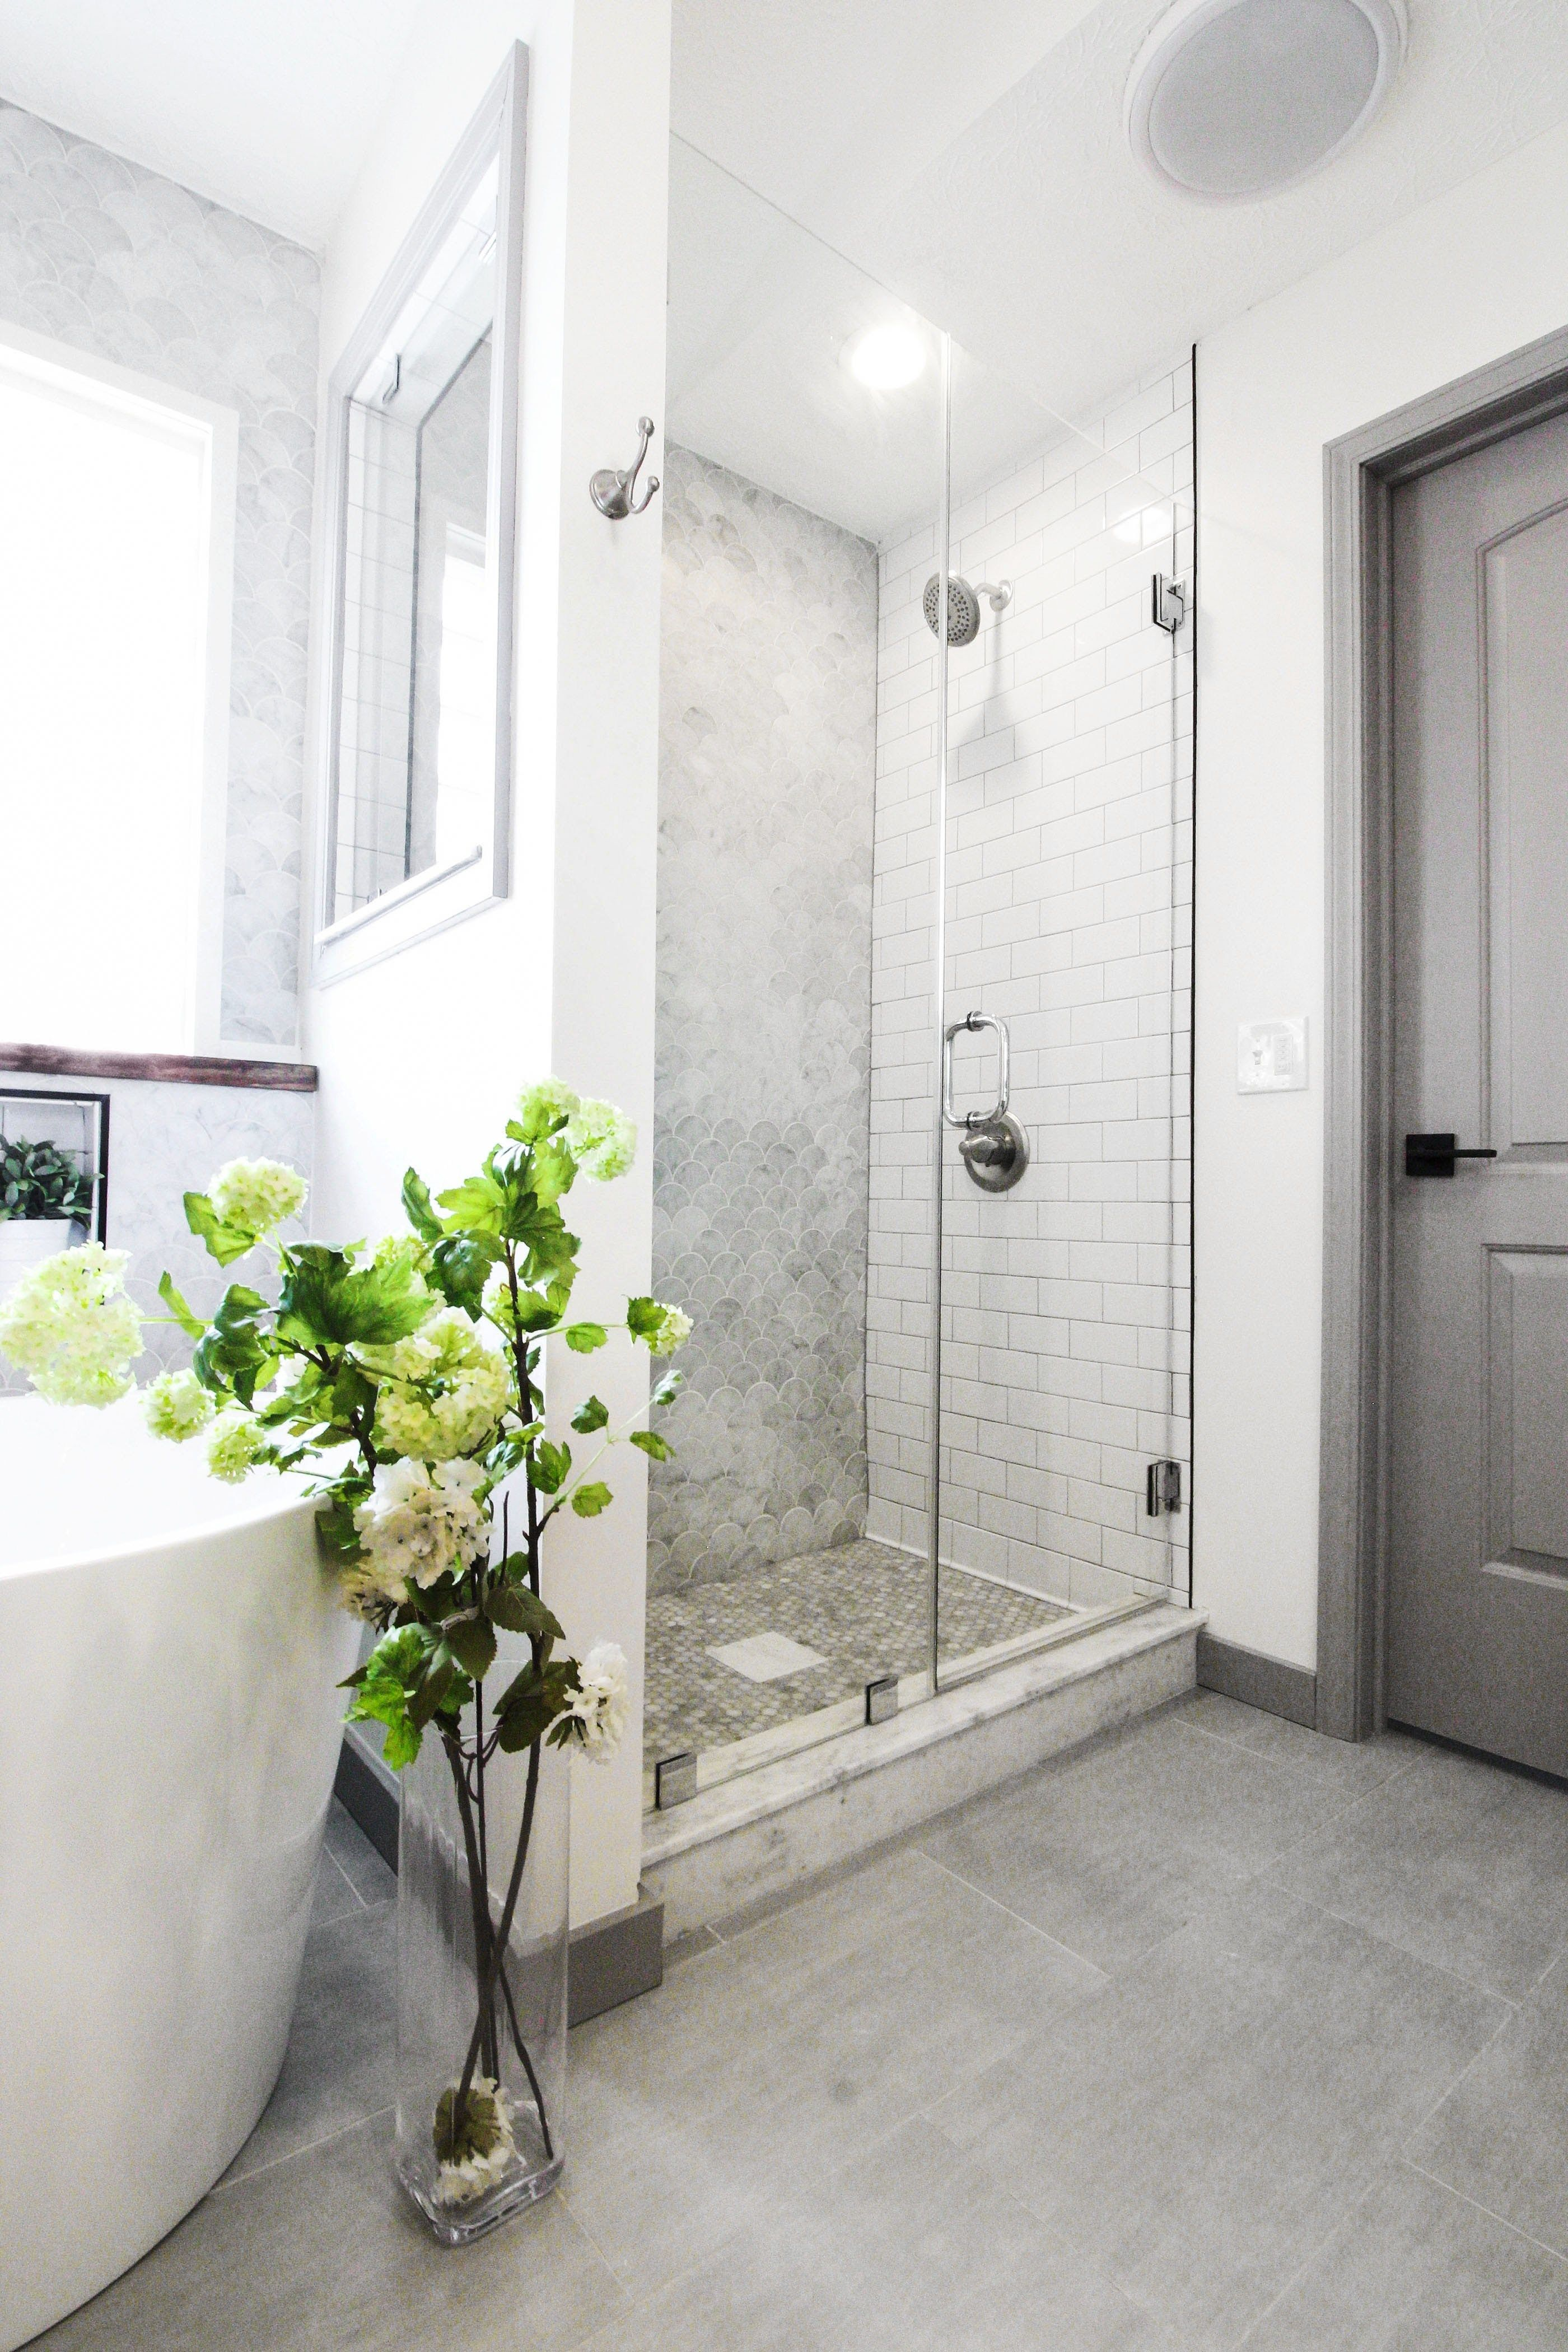 Client Project: JW Bathroom Remodel | Middle, Bath and Master bathrooms